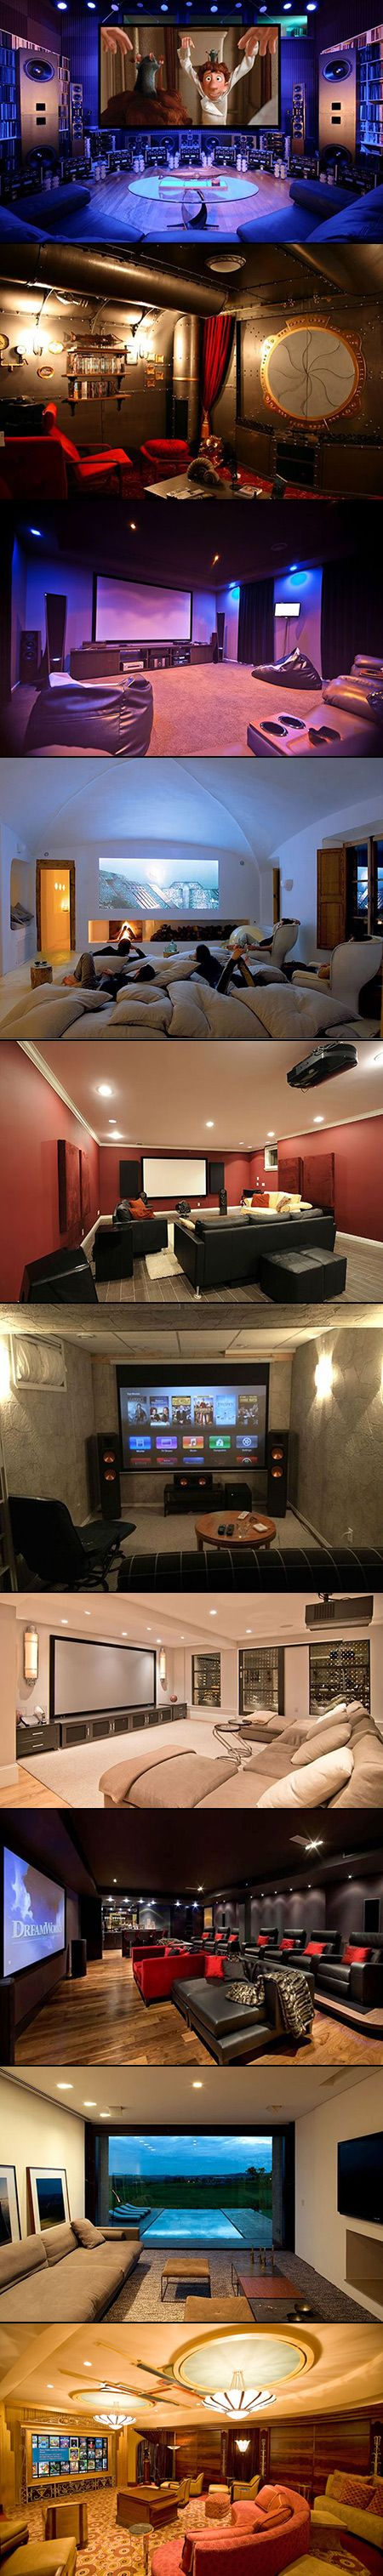 10 Incredible Home Theaters That Geeks Would Love. These could also make great gaming rooms :)